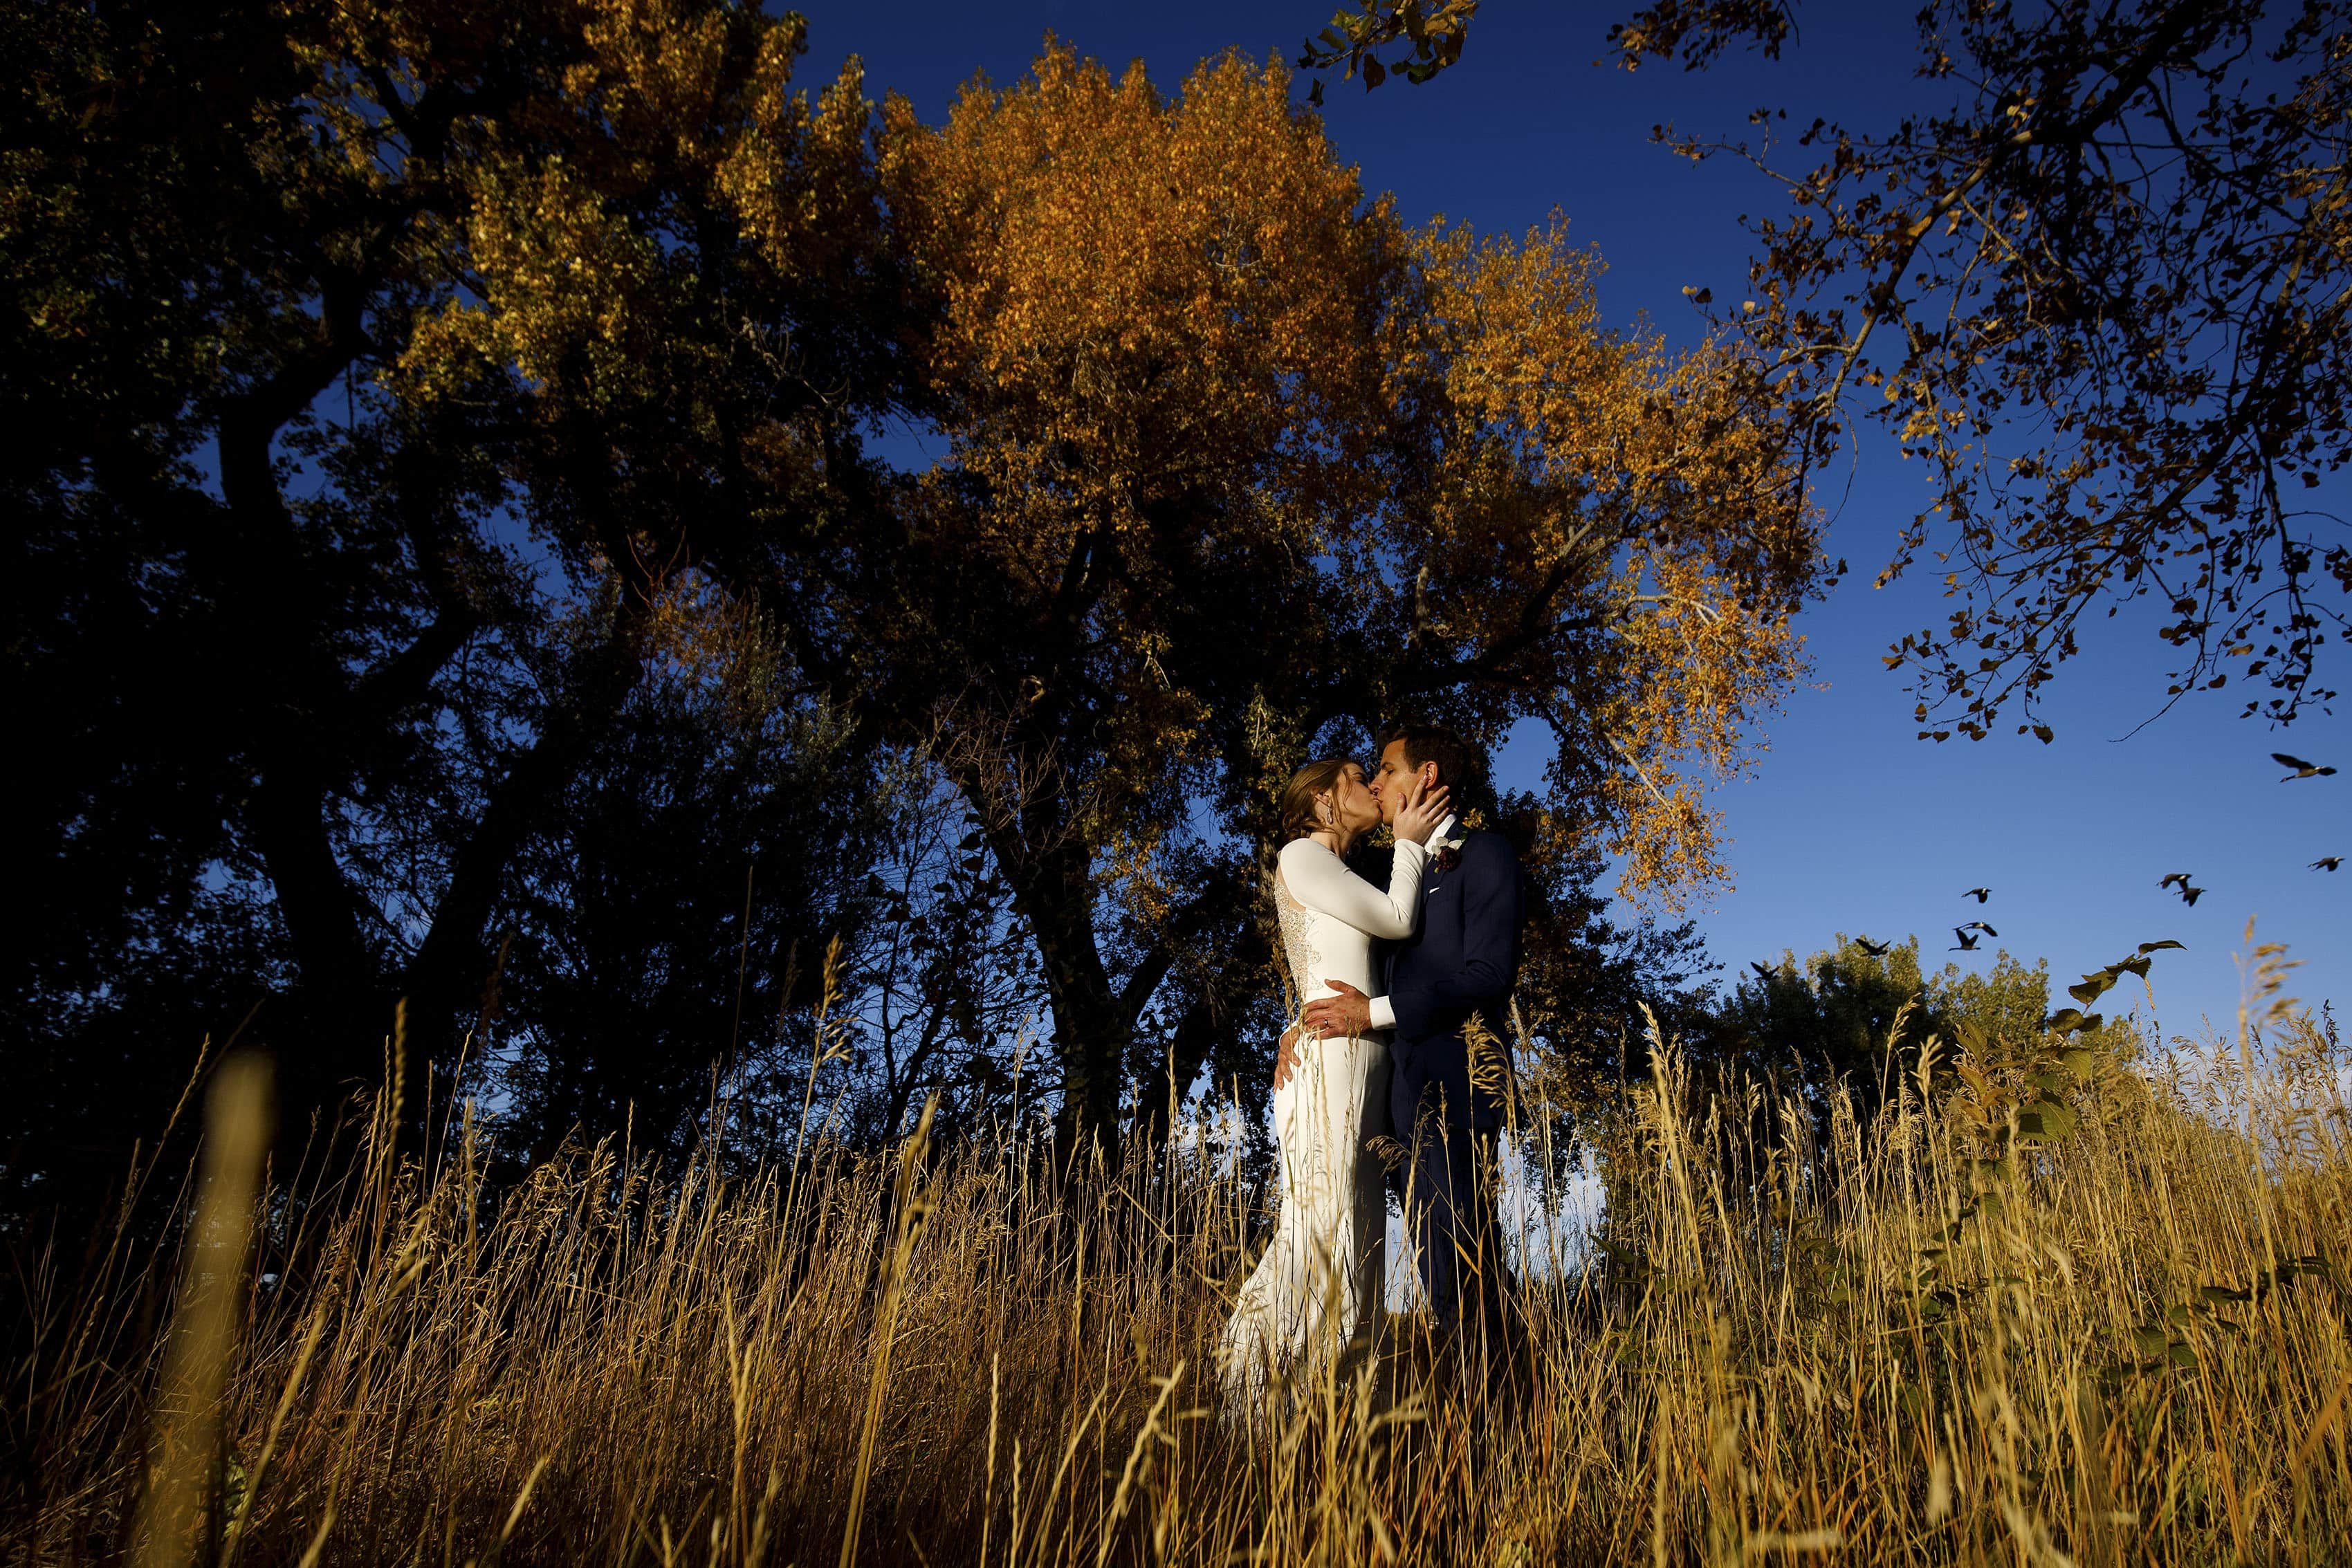 The bride and groom share a kiss under a tree and blue sky on their wedding day at The Vista at Applewood Golf Course